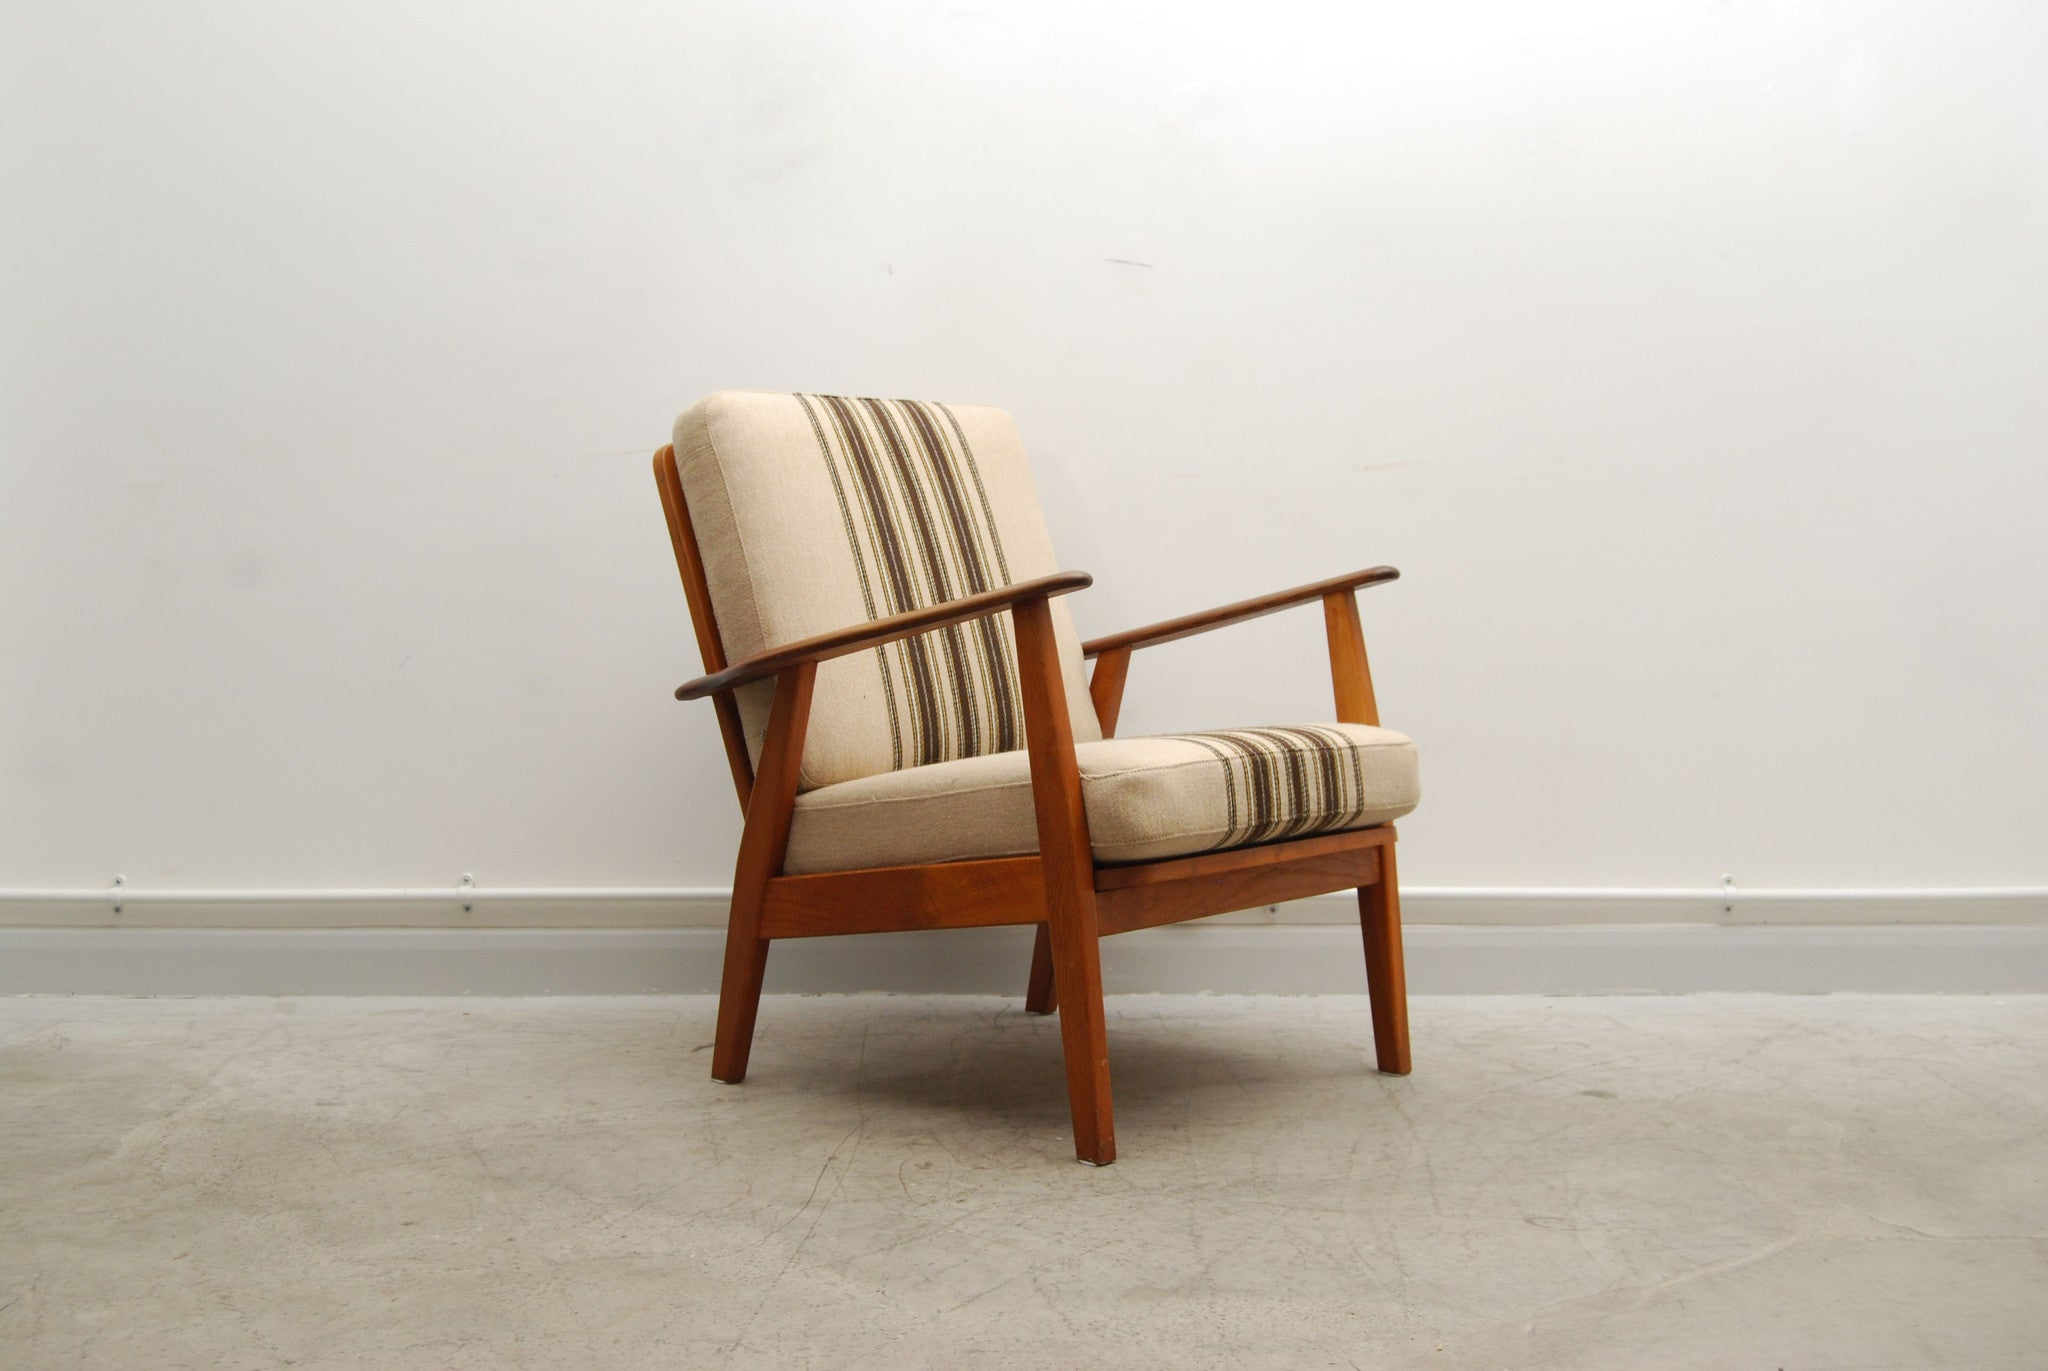 Teak lounge chair with striped cushions